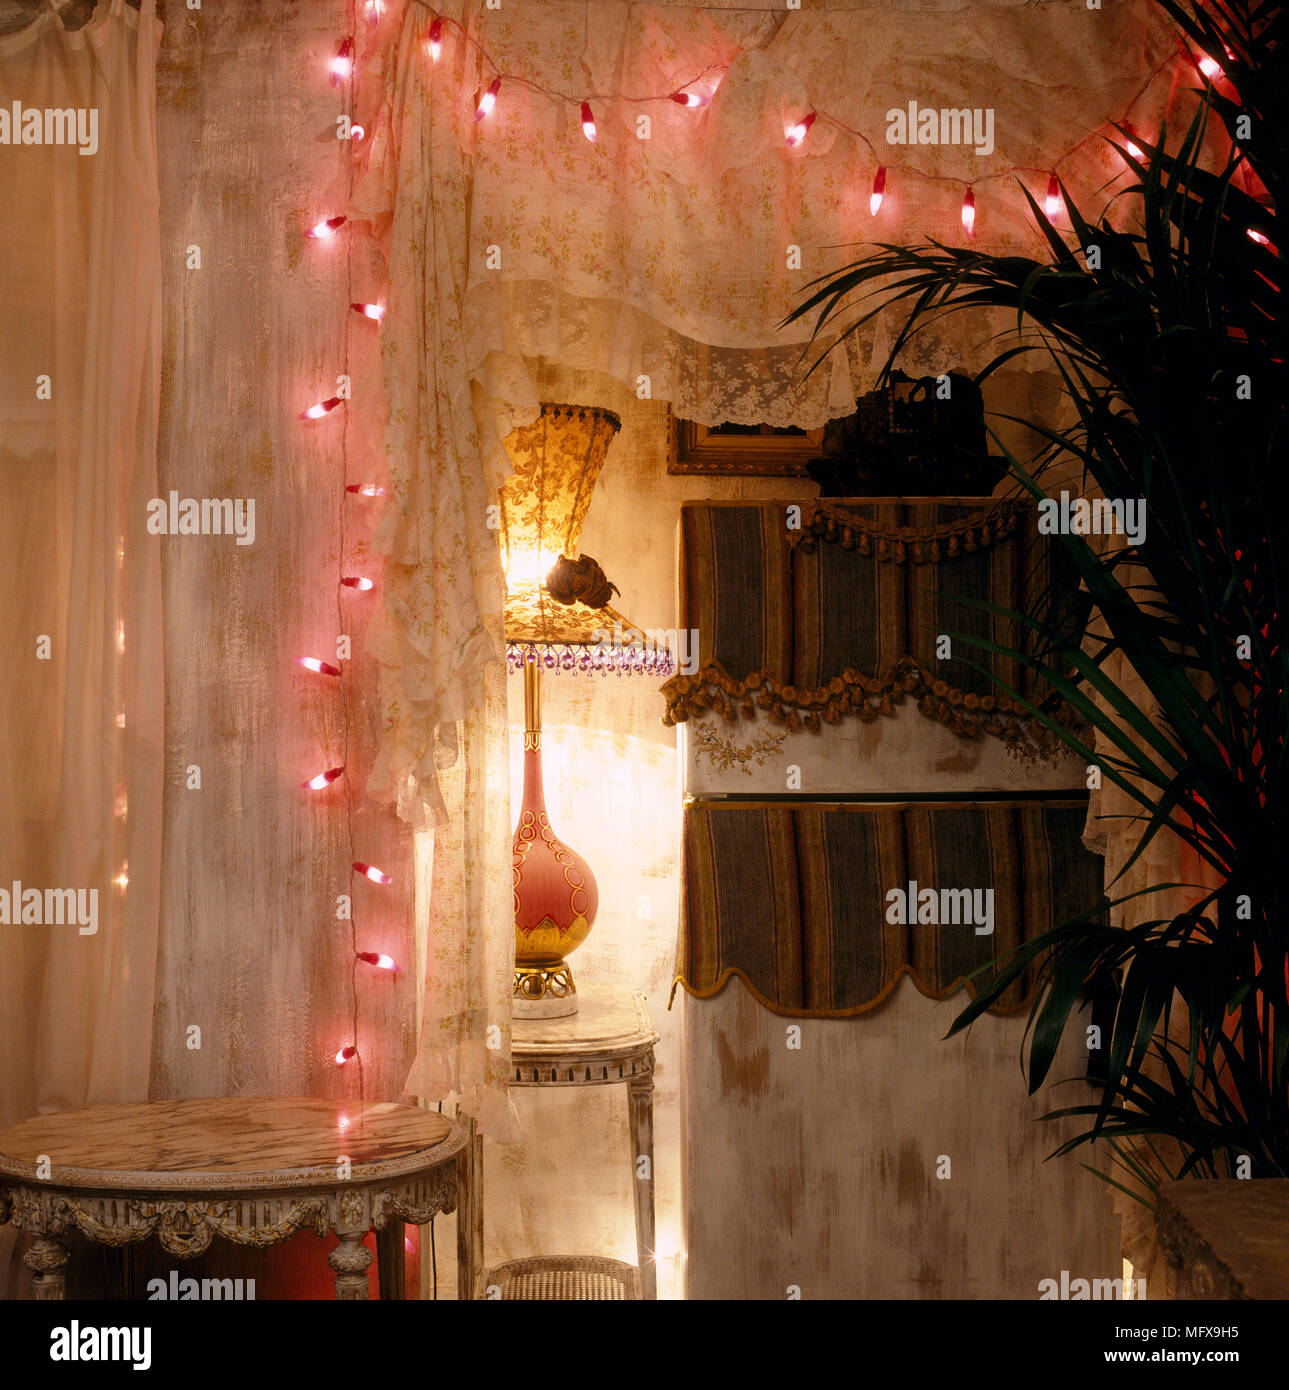 A Detail Of A Romantic Bedroom With Lit Fairy Lights Draped Around